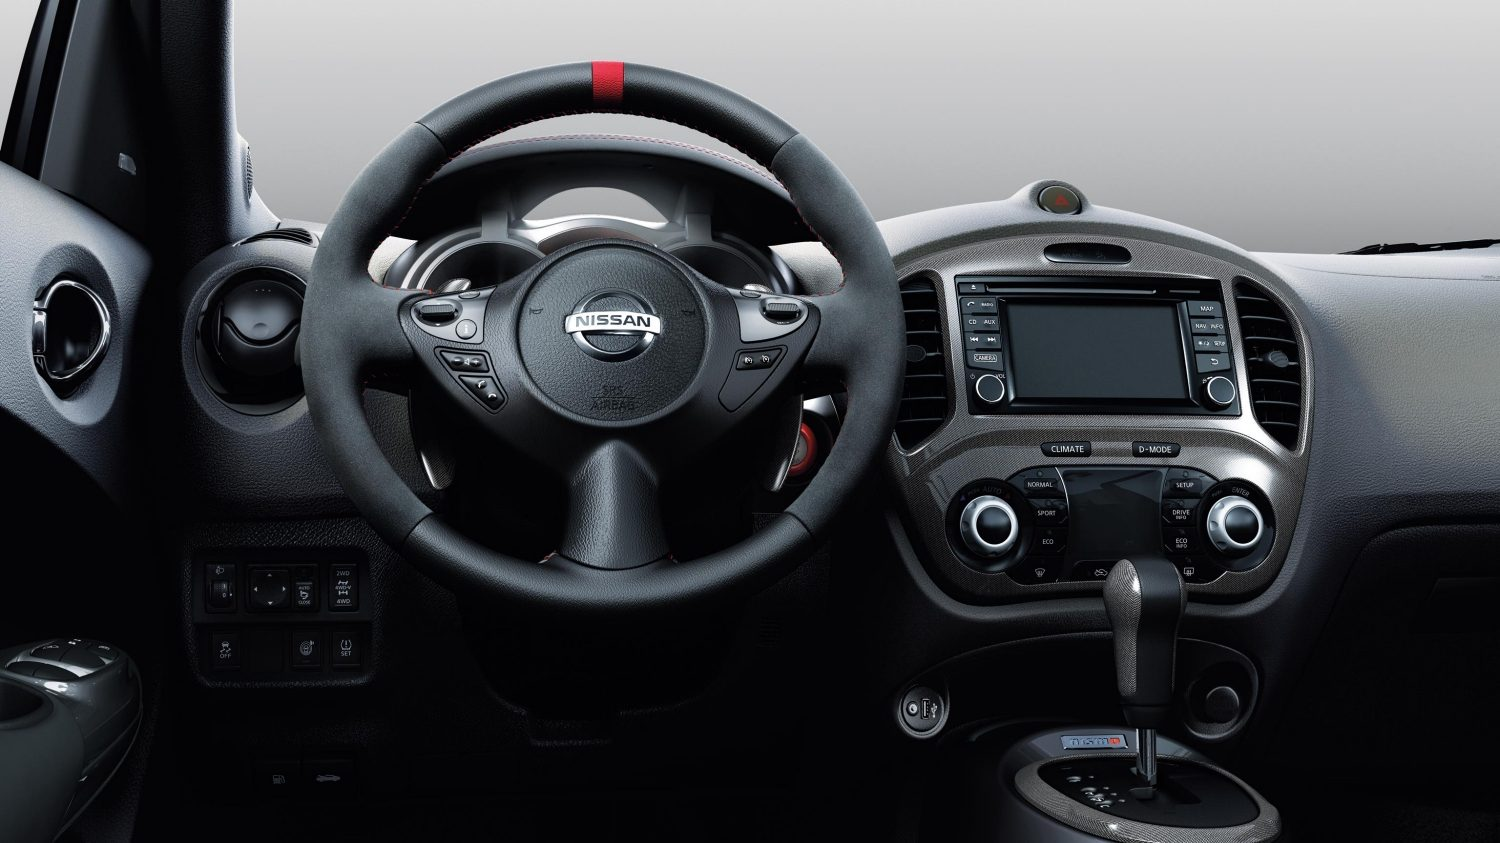 NISMO RS - Petit crossover & SUV - Transmission X-Tronic | Nissan Juke